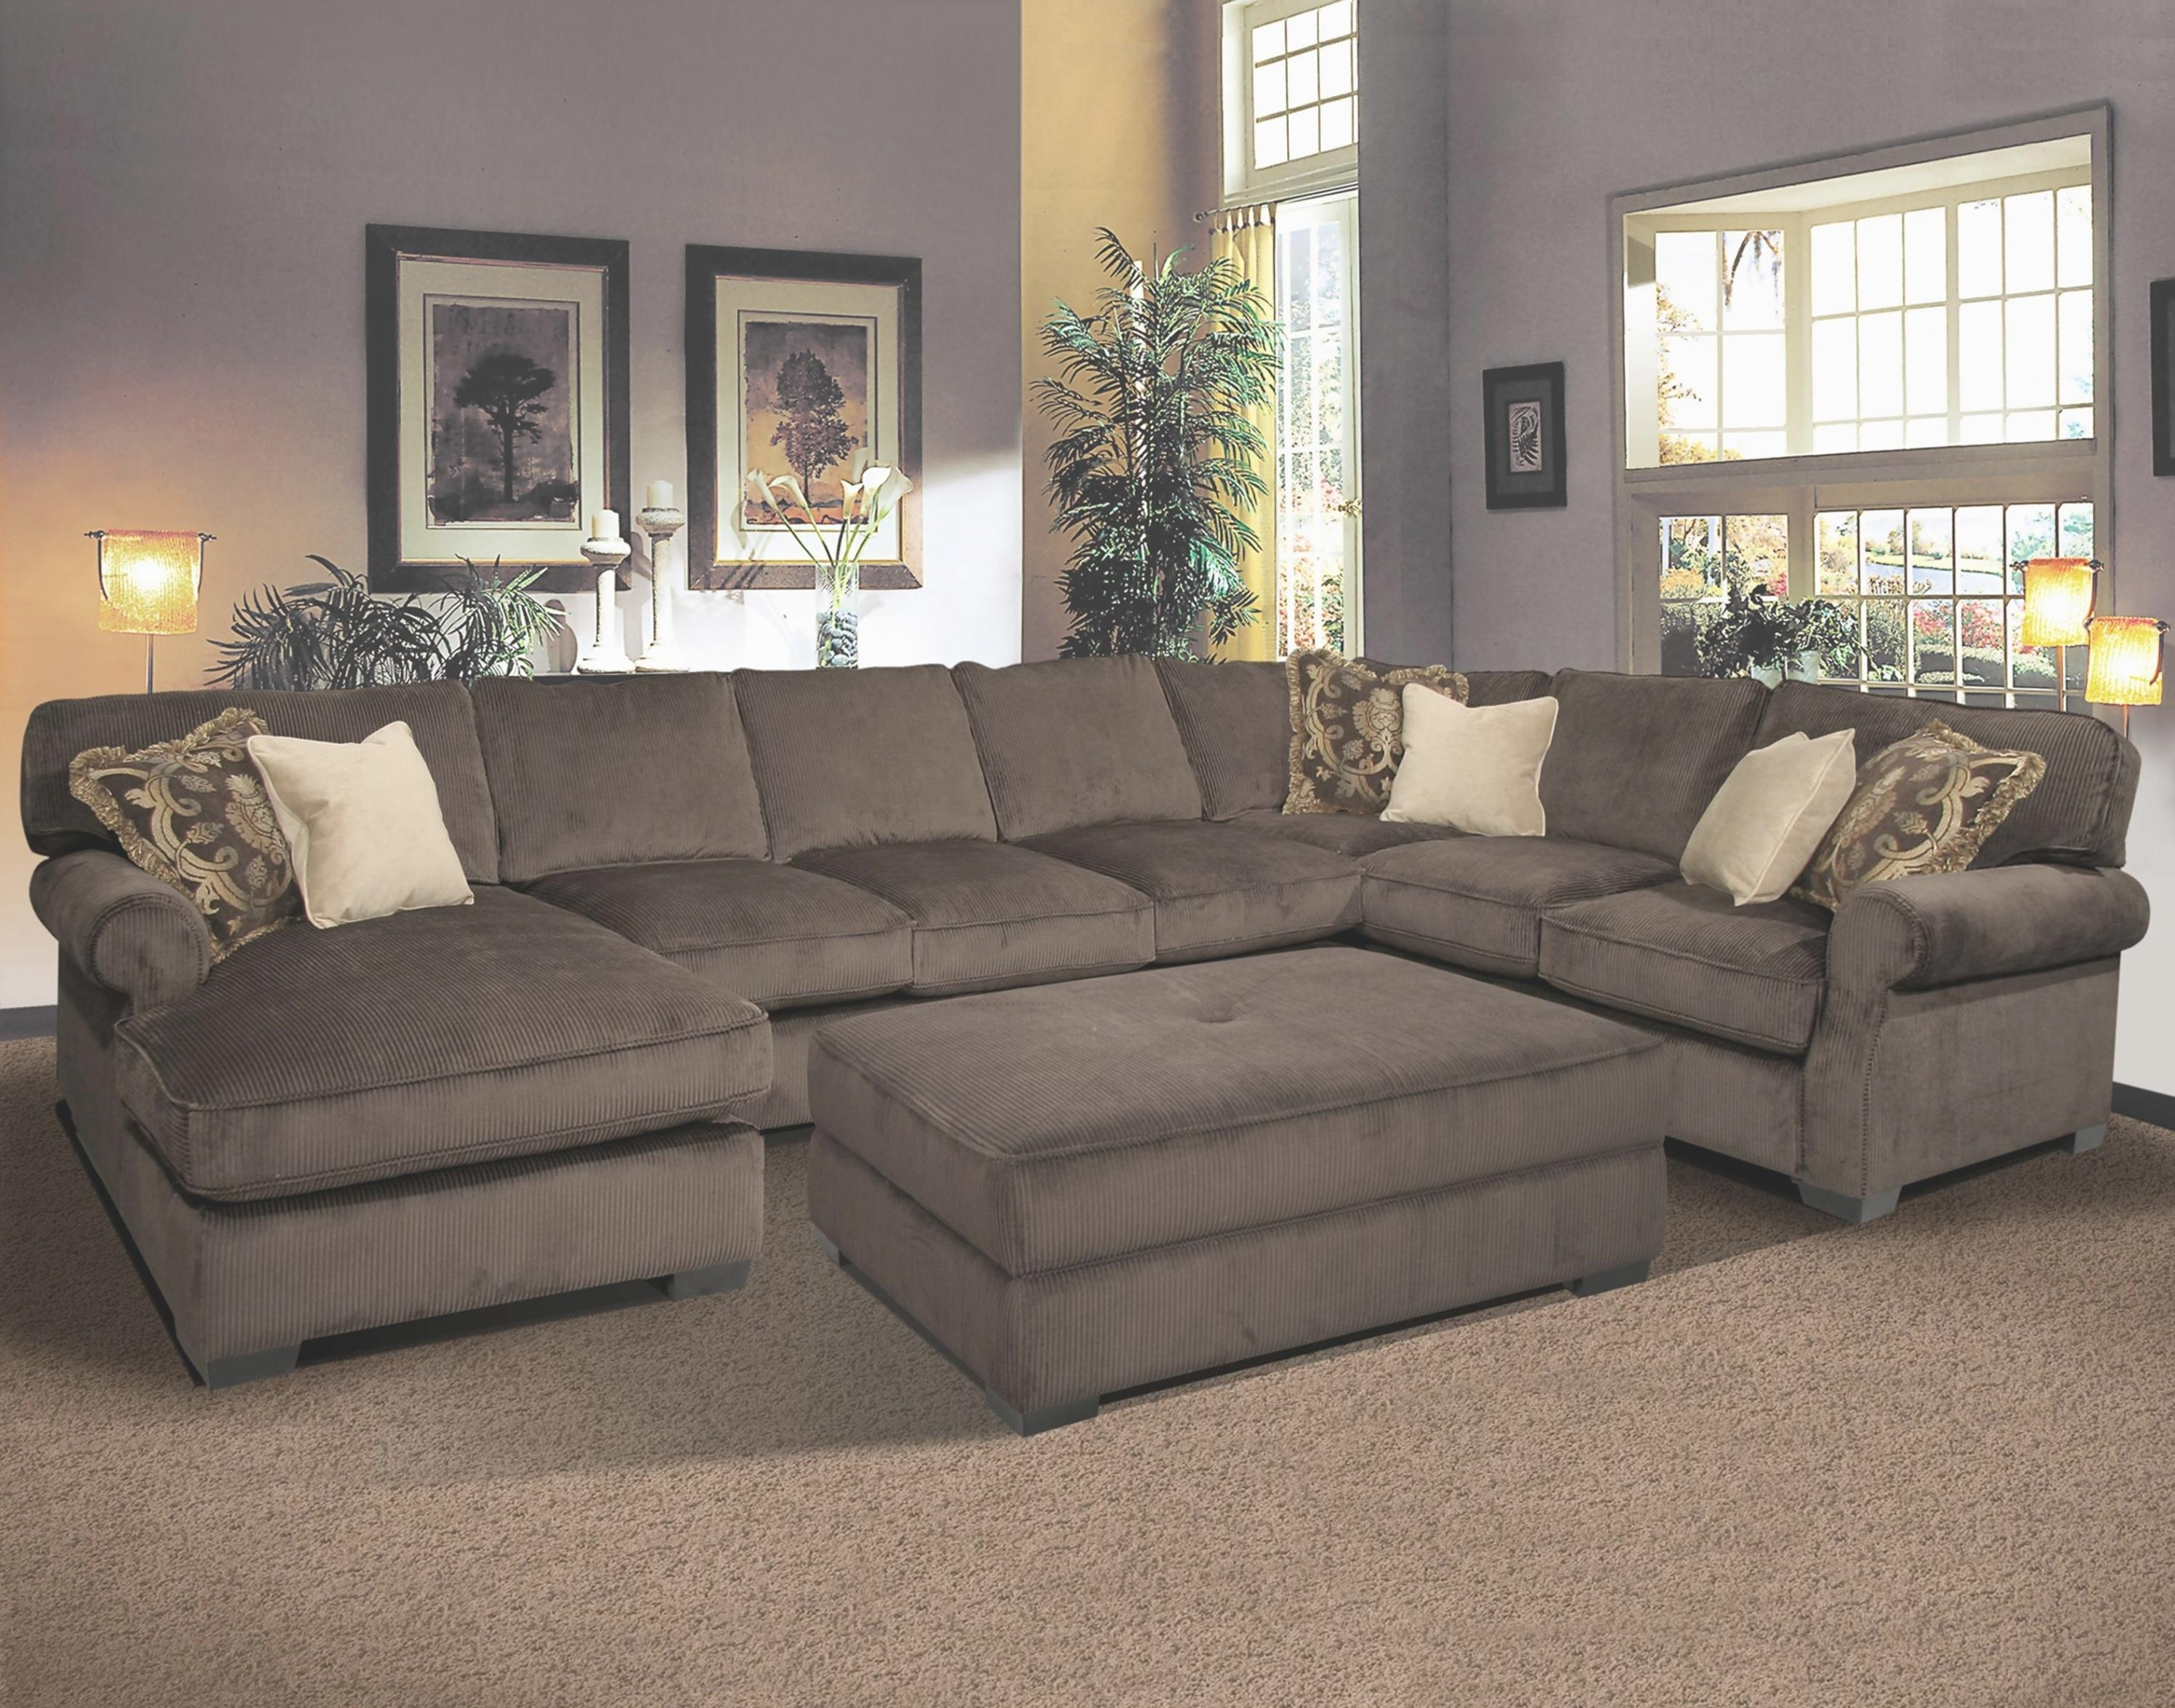 Sofas Center : Sophia Oversized Chaise Sectional Sofa The Dump With Regard To Oversized Sectional Sofa (Image 16 of 20)